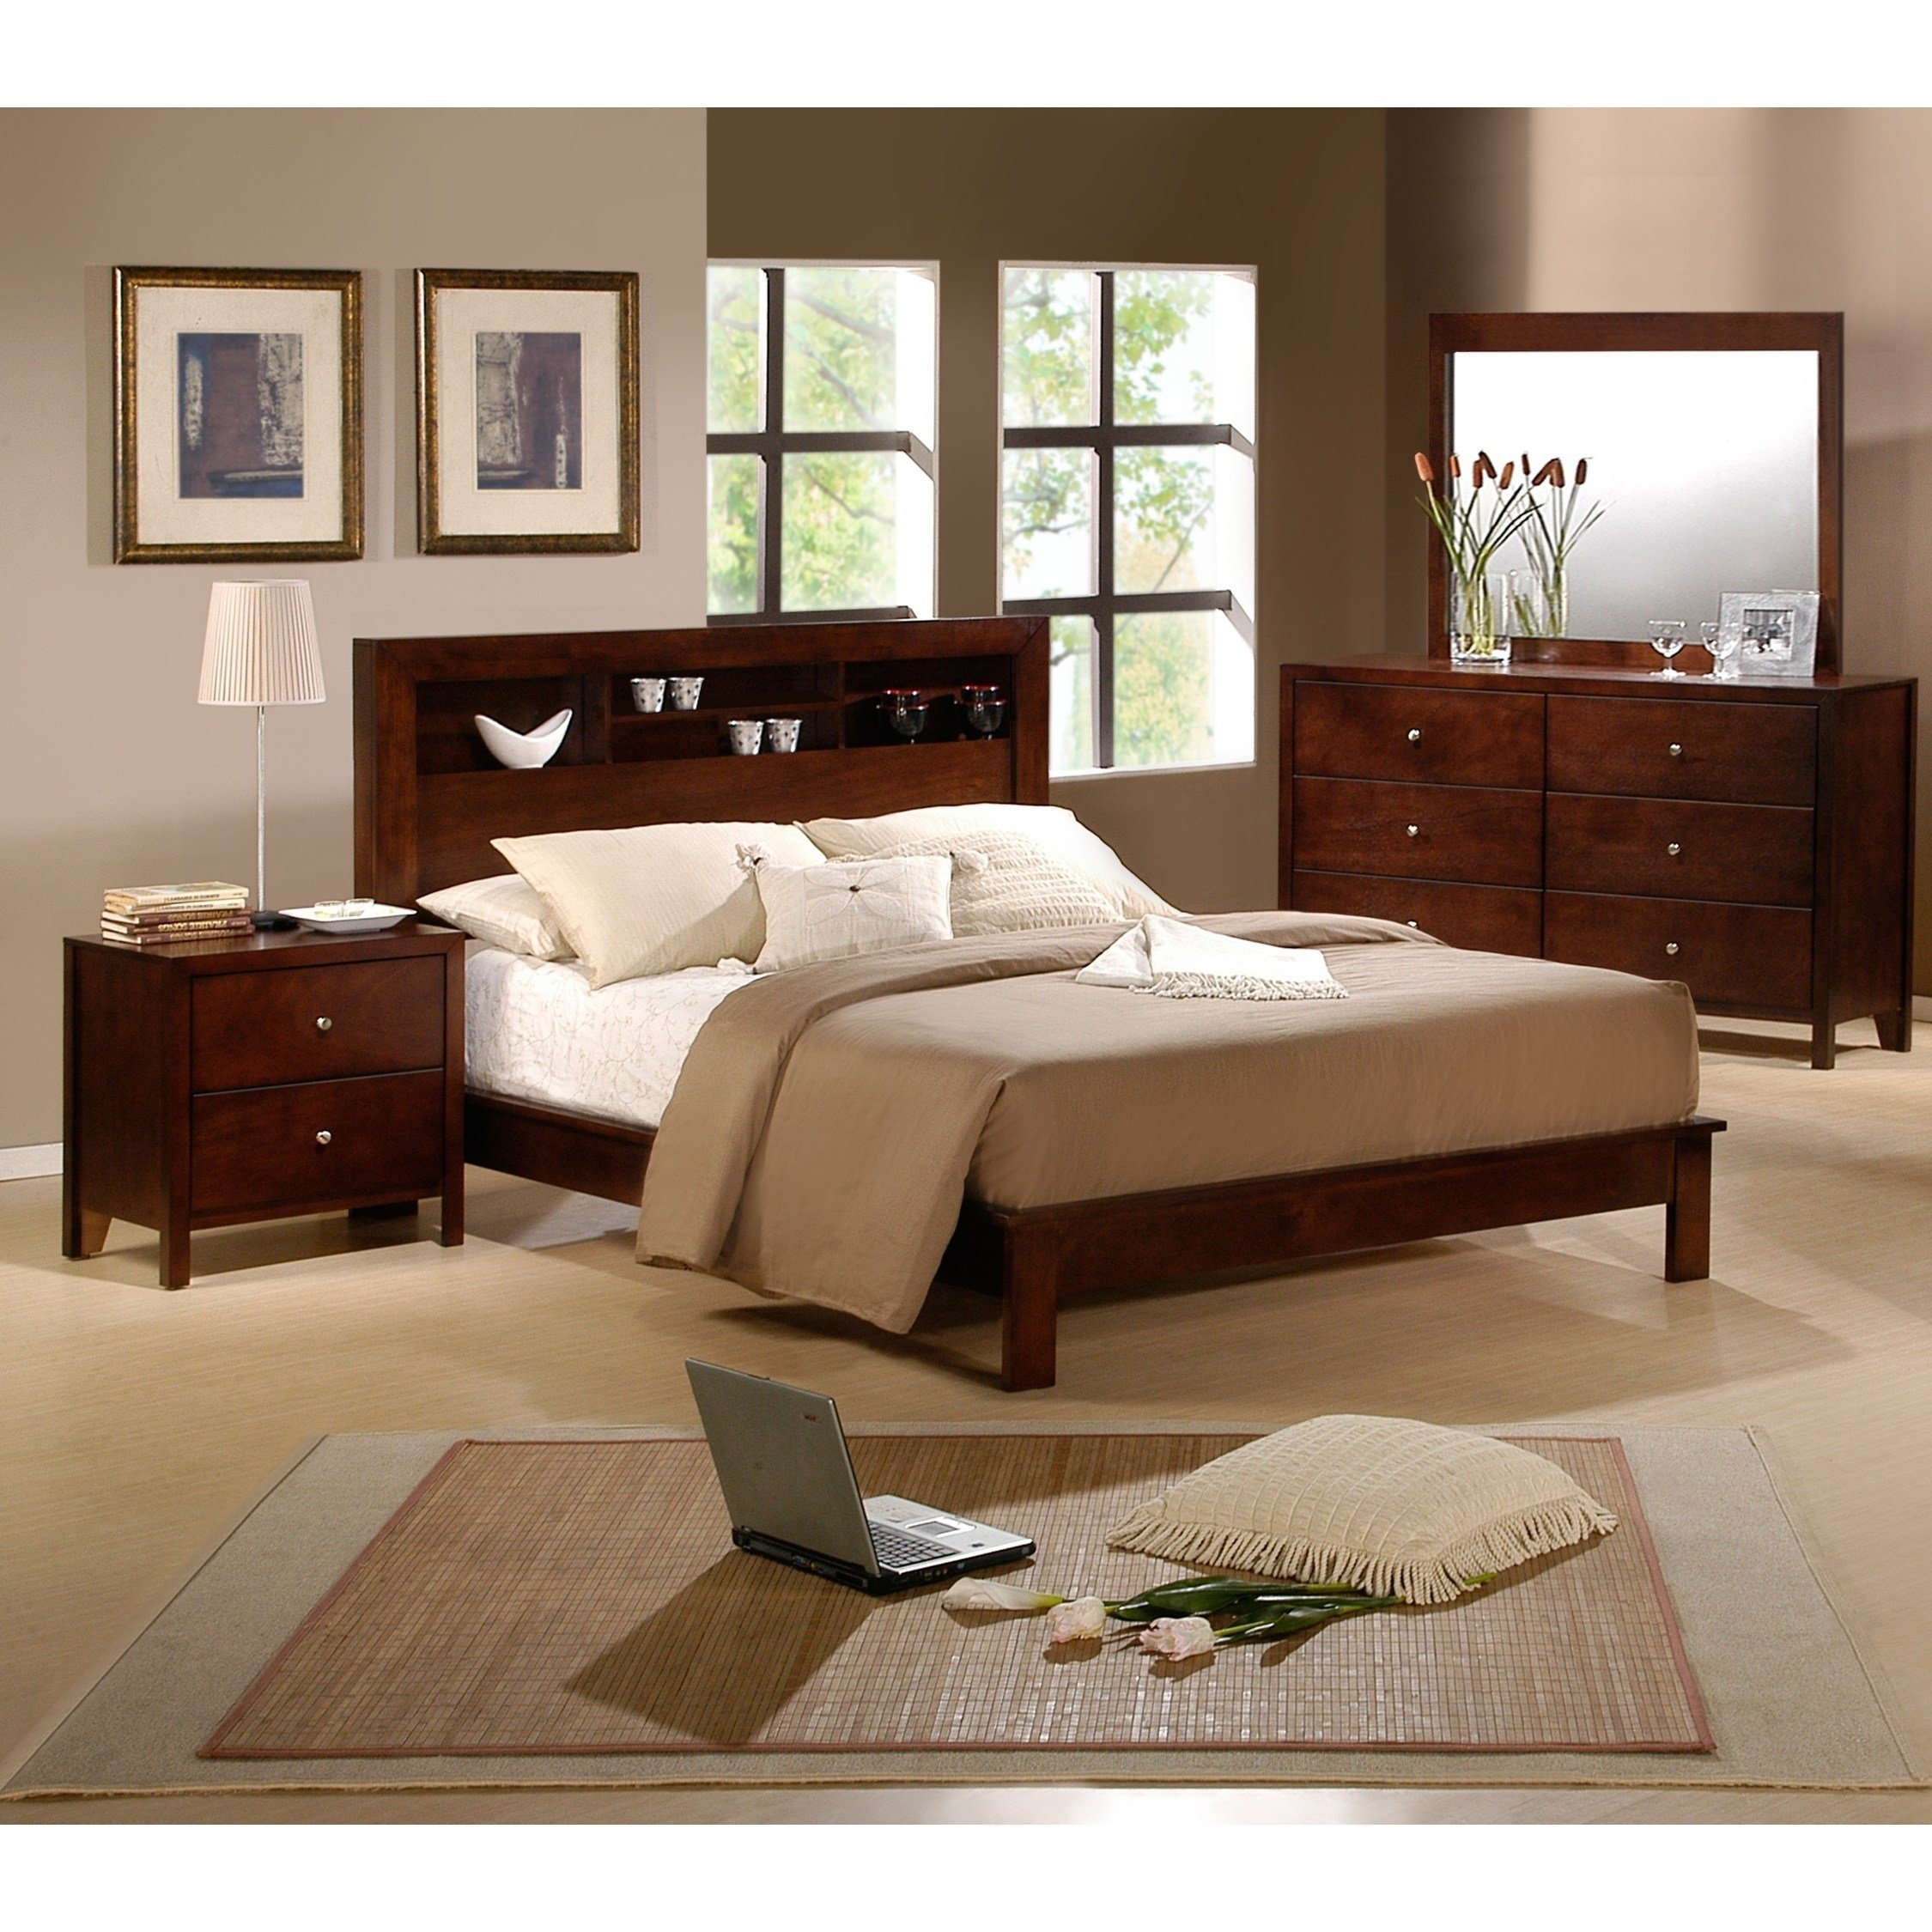 Best Black Queen Bedroom Sets King Size Ikea Captivating With Pictures